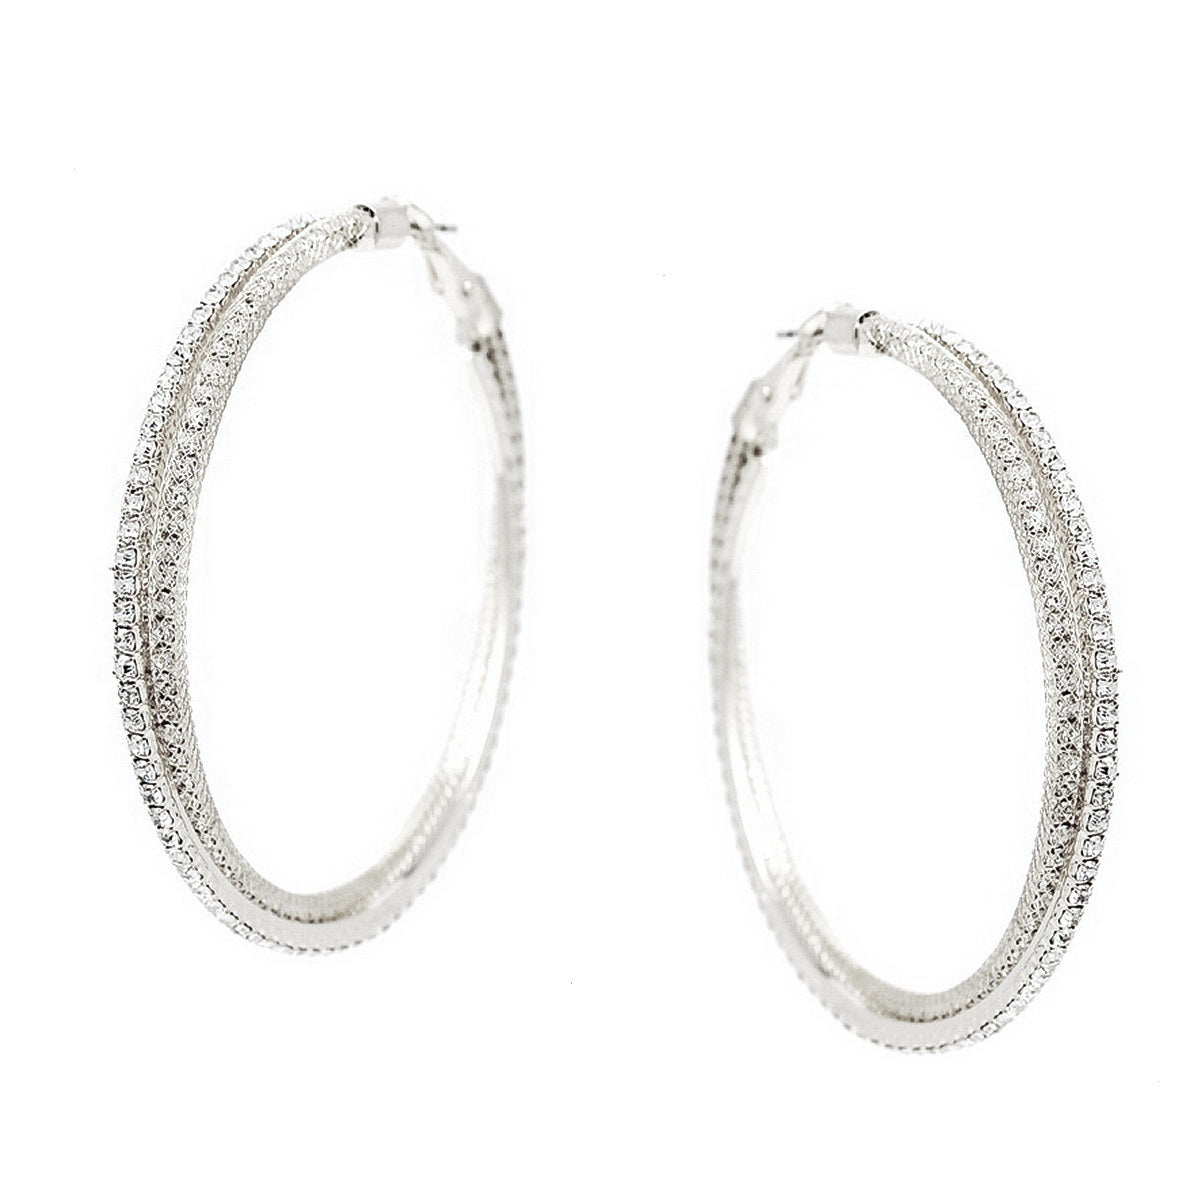 Rhinestone Pave Mesh Twisted Hoop Earrings (Large)